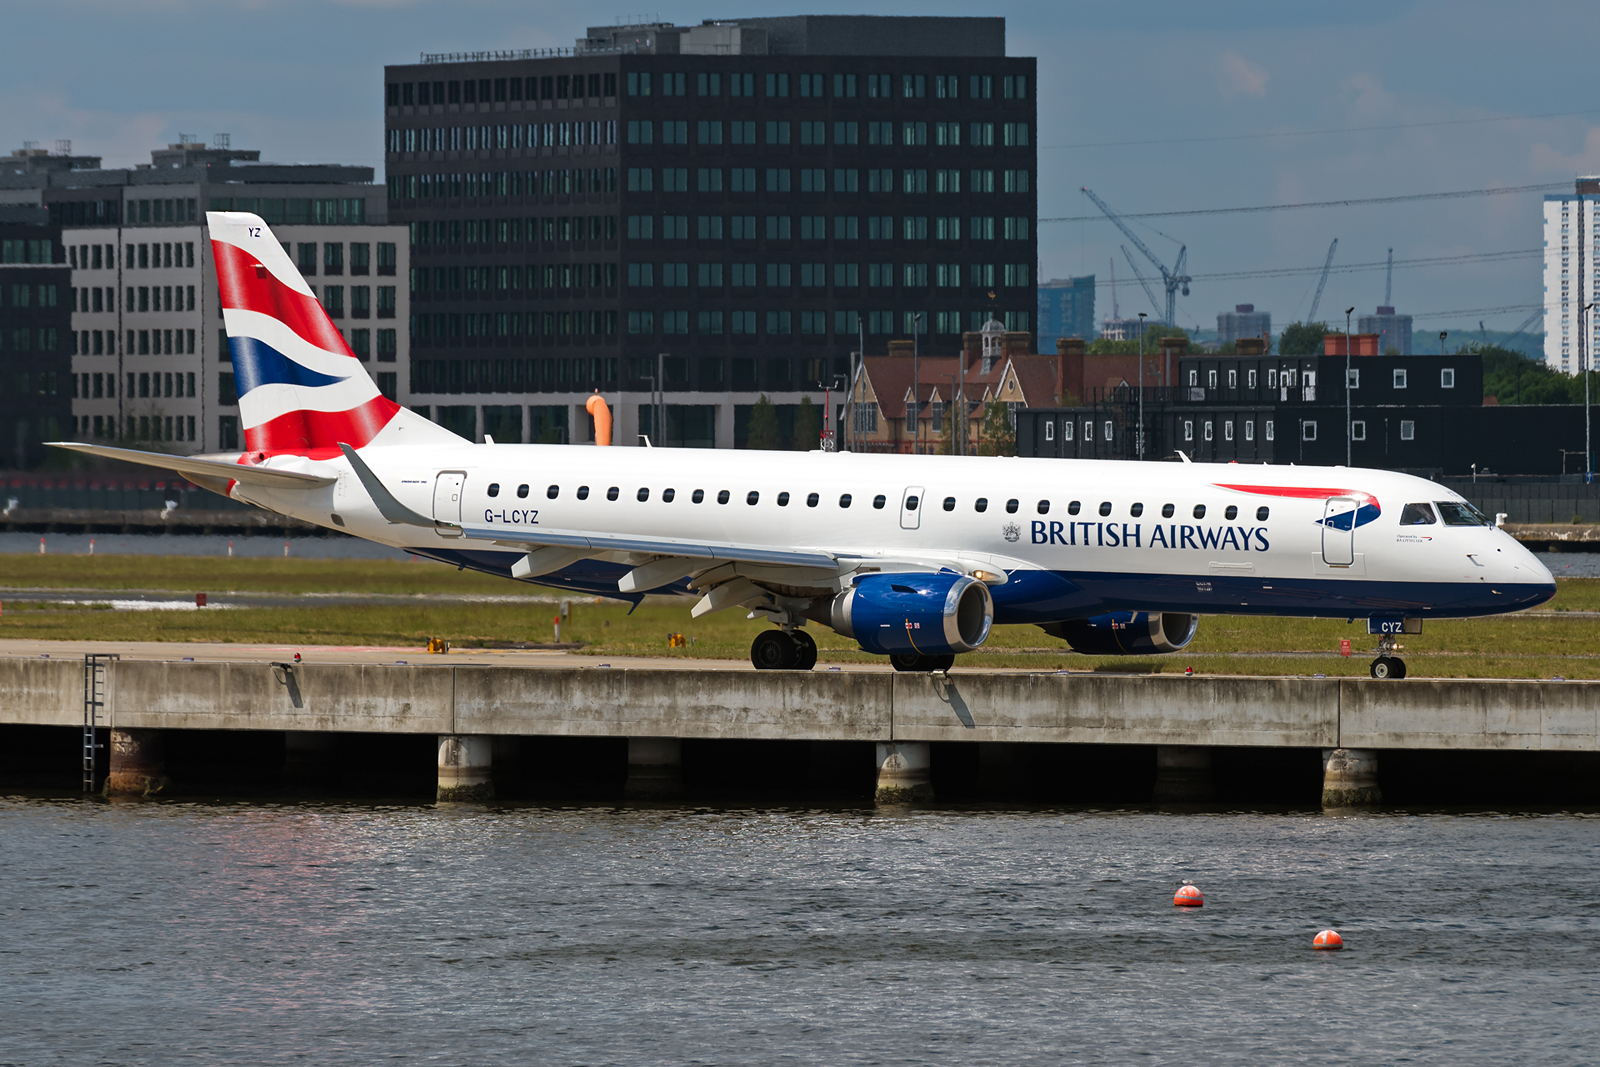 There are different places at LCY airport to catch planes. One of my favourites is this one.